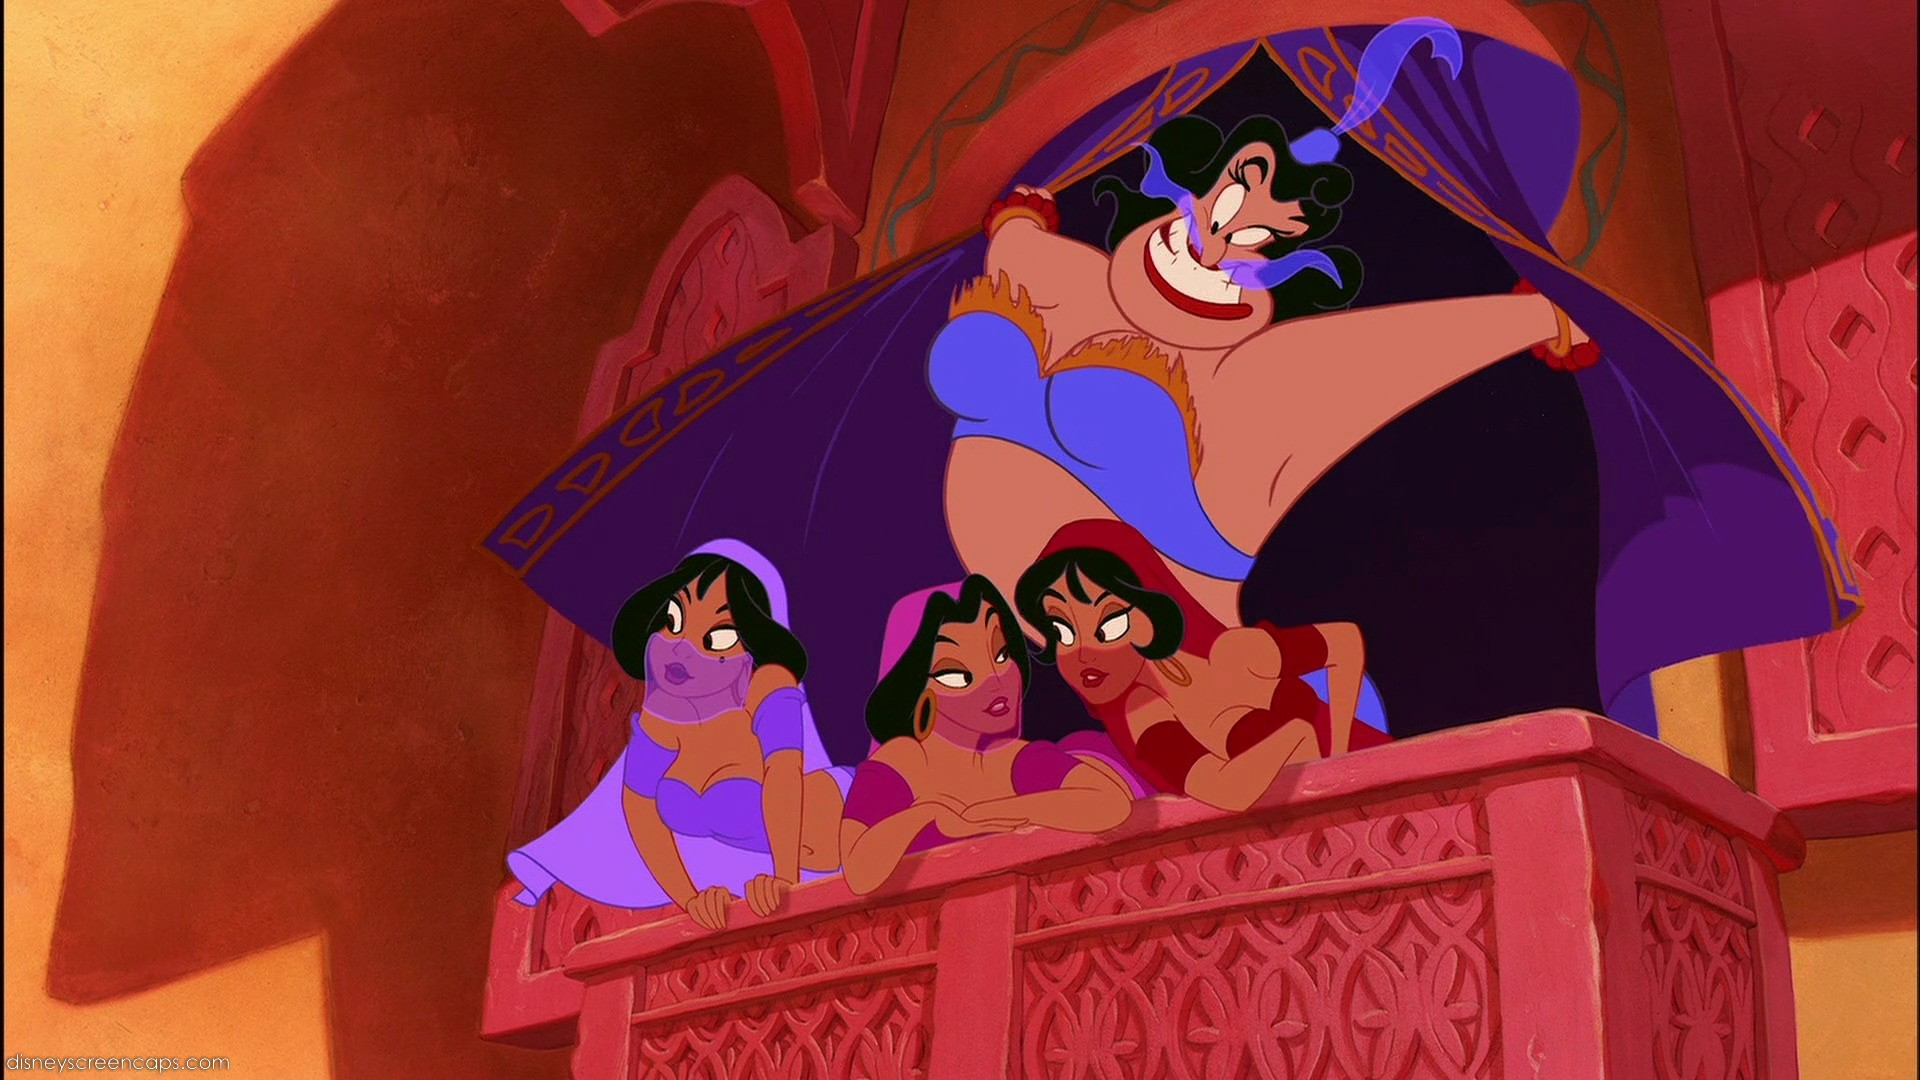 aladdin review Home legit reviews march 20, 2014 6:29pm pt broadway review: 'disney aladdin' this super-costly extravaganza doesn't do justice to the movie, or to the spirit of the late howard ashman.